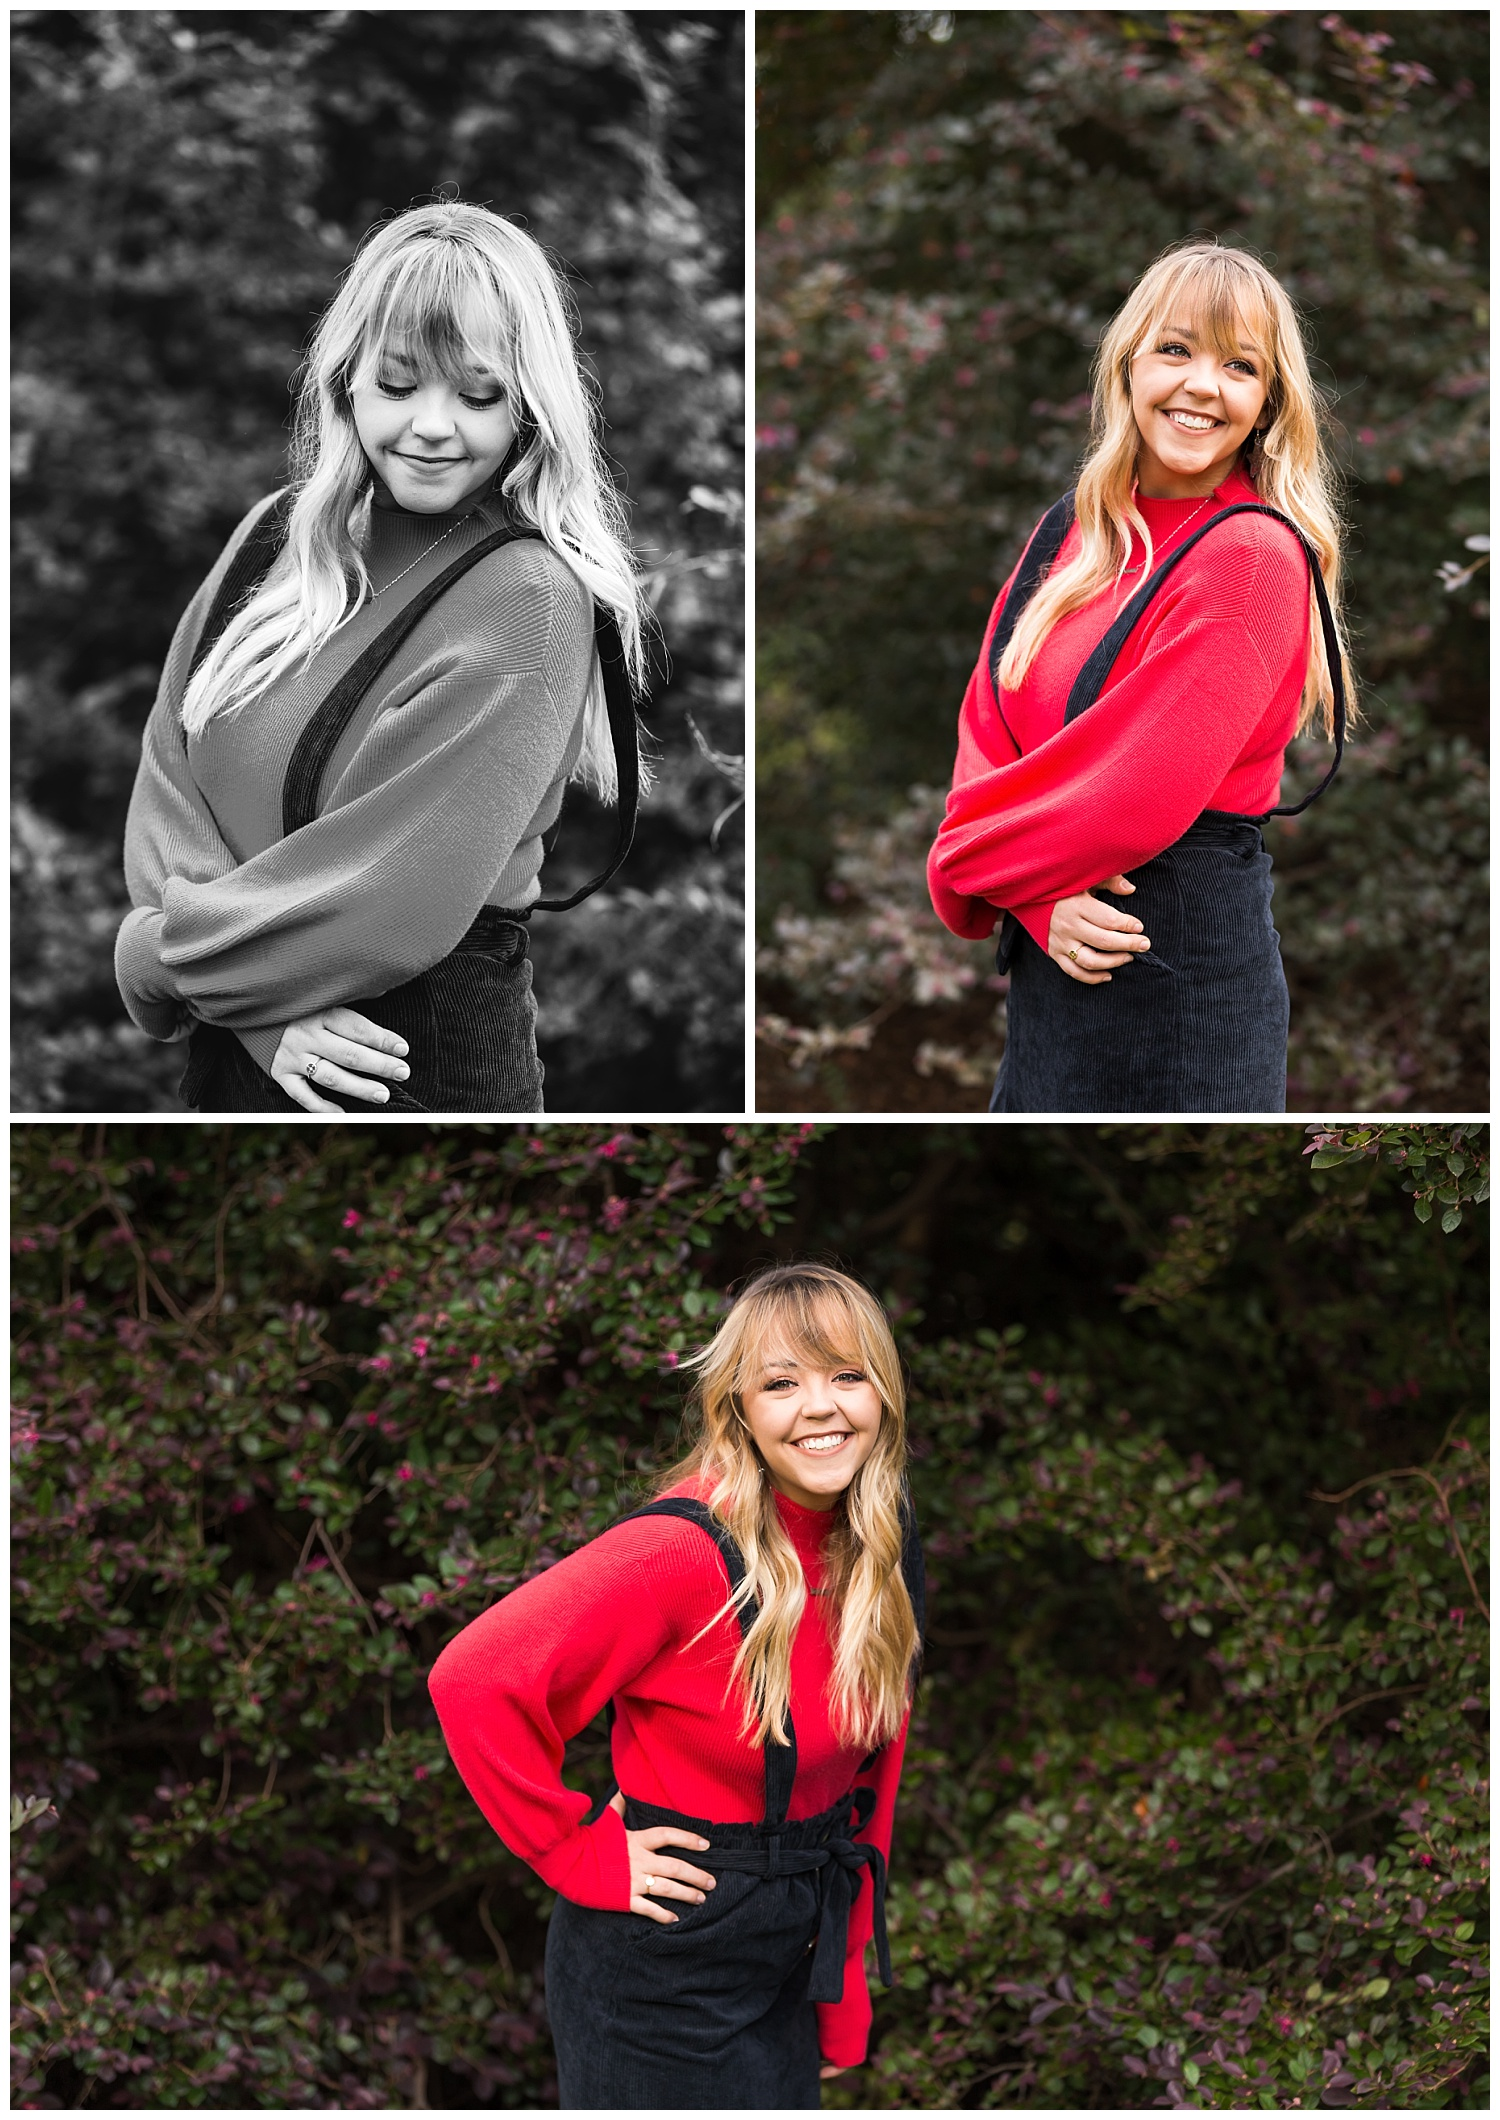 kiesel park portrait photography auburn alabama red